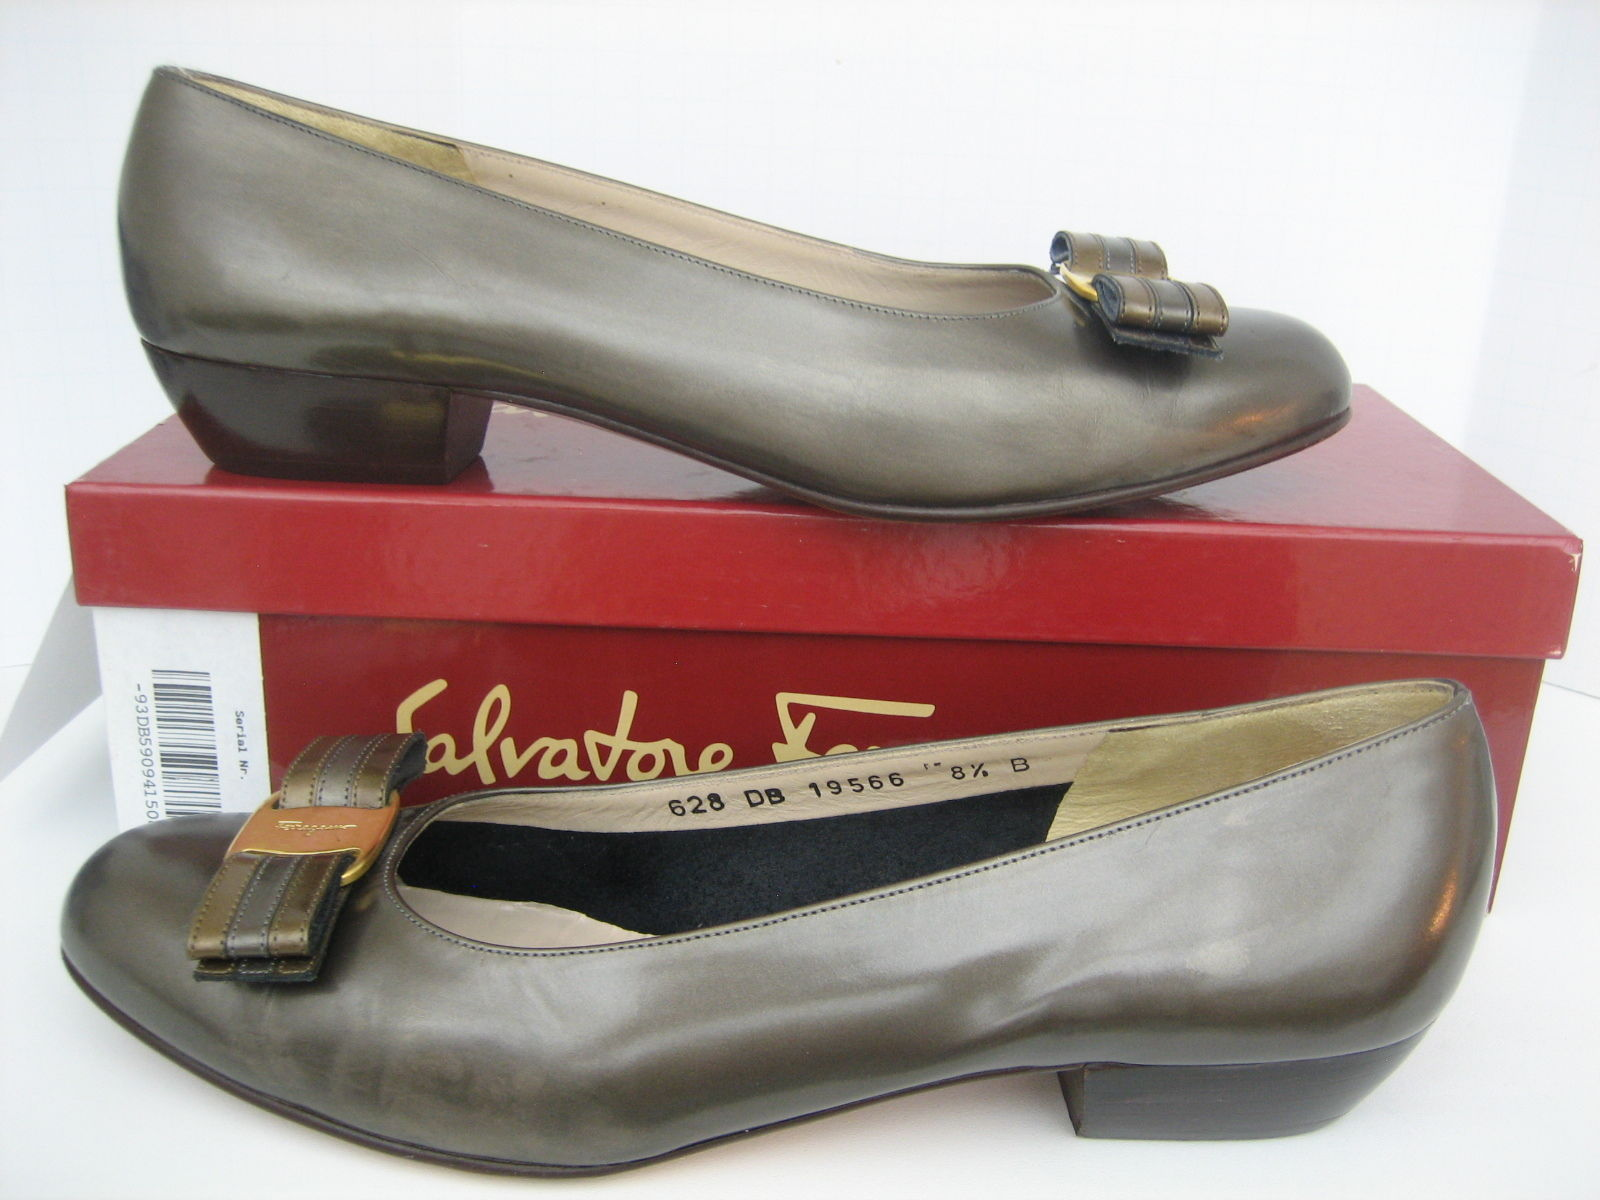 SALVATORE FERRAGAMO VARA GLOSSY CALFSKIN LEATHER BRONZE PUMPS HEELS SHOES 8.5 B